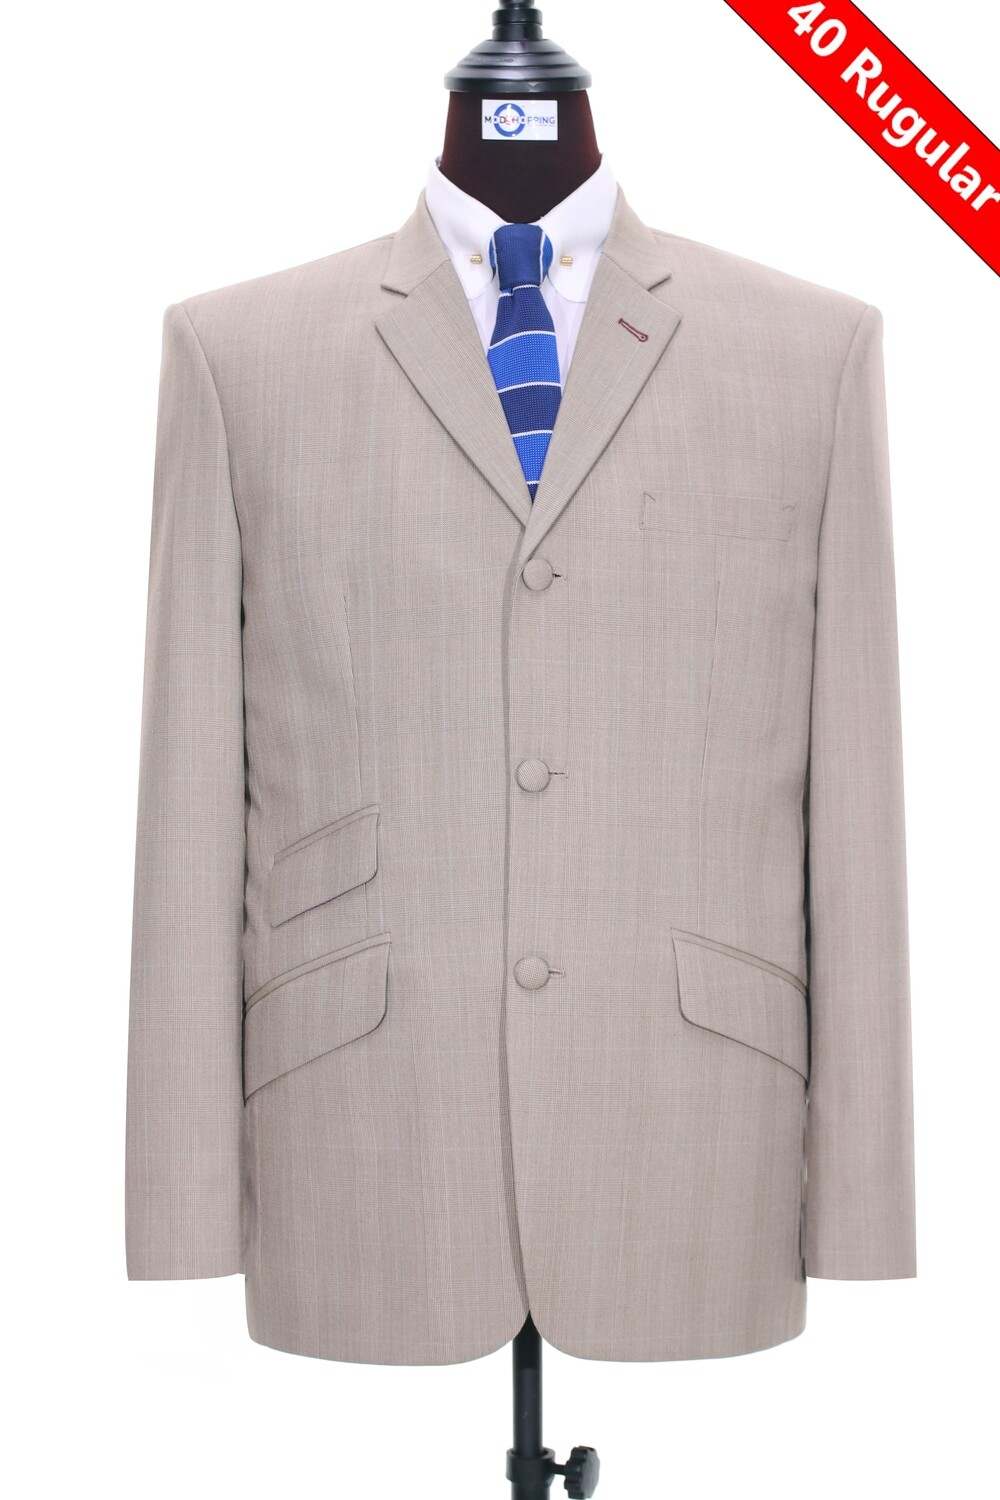 Sale Only This Jacket Brige Glen Plaid Check Jacket Size 40R